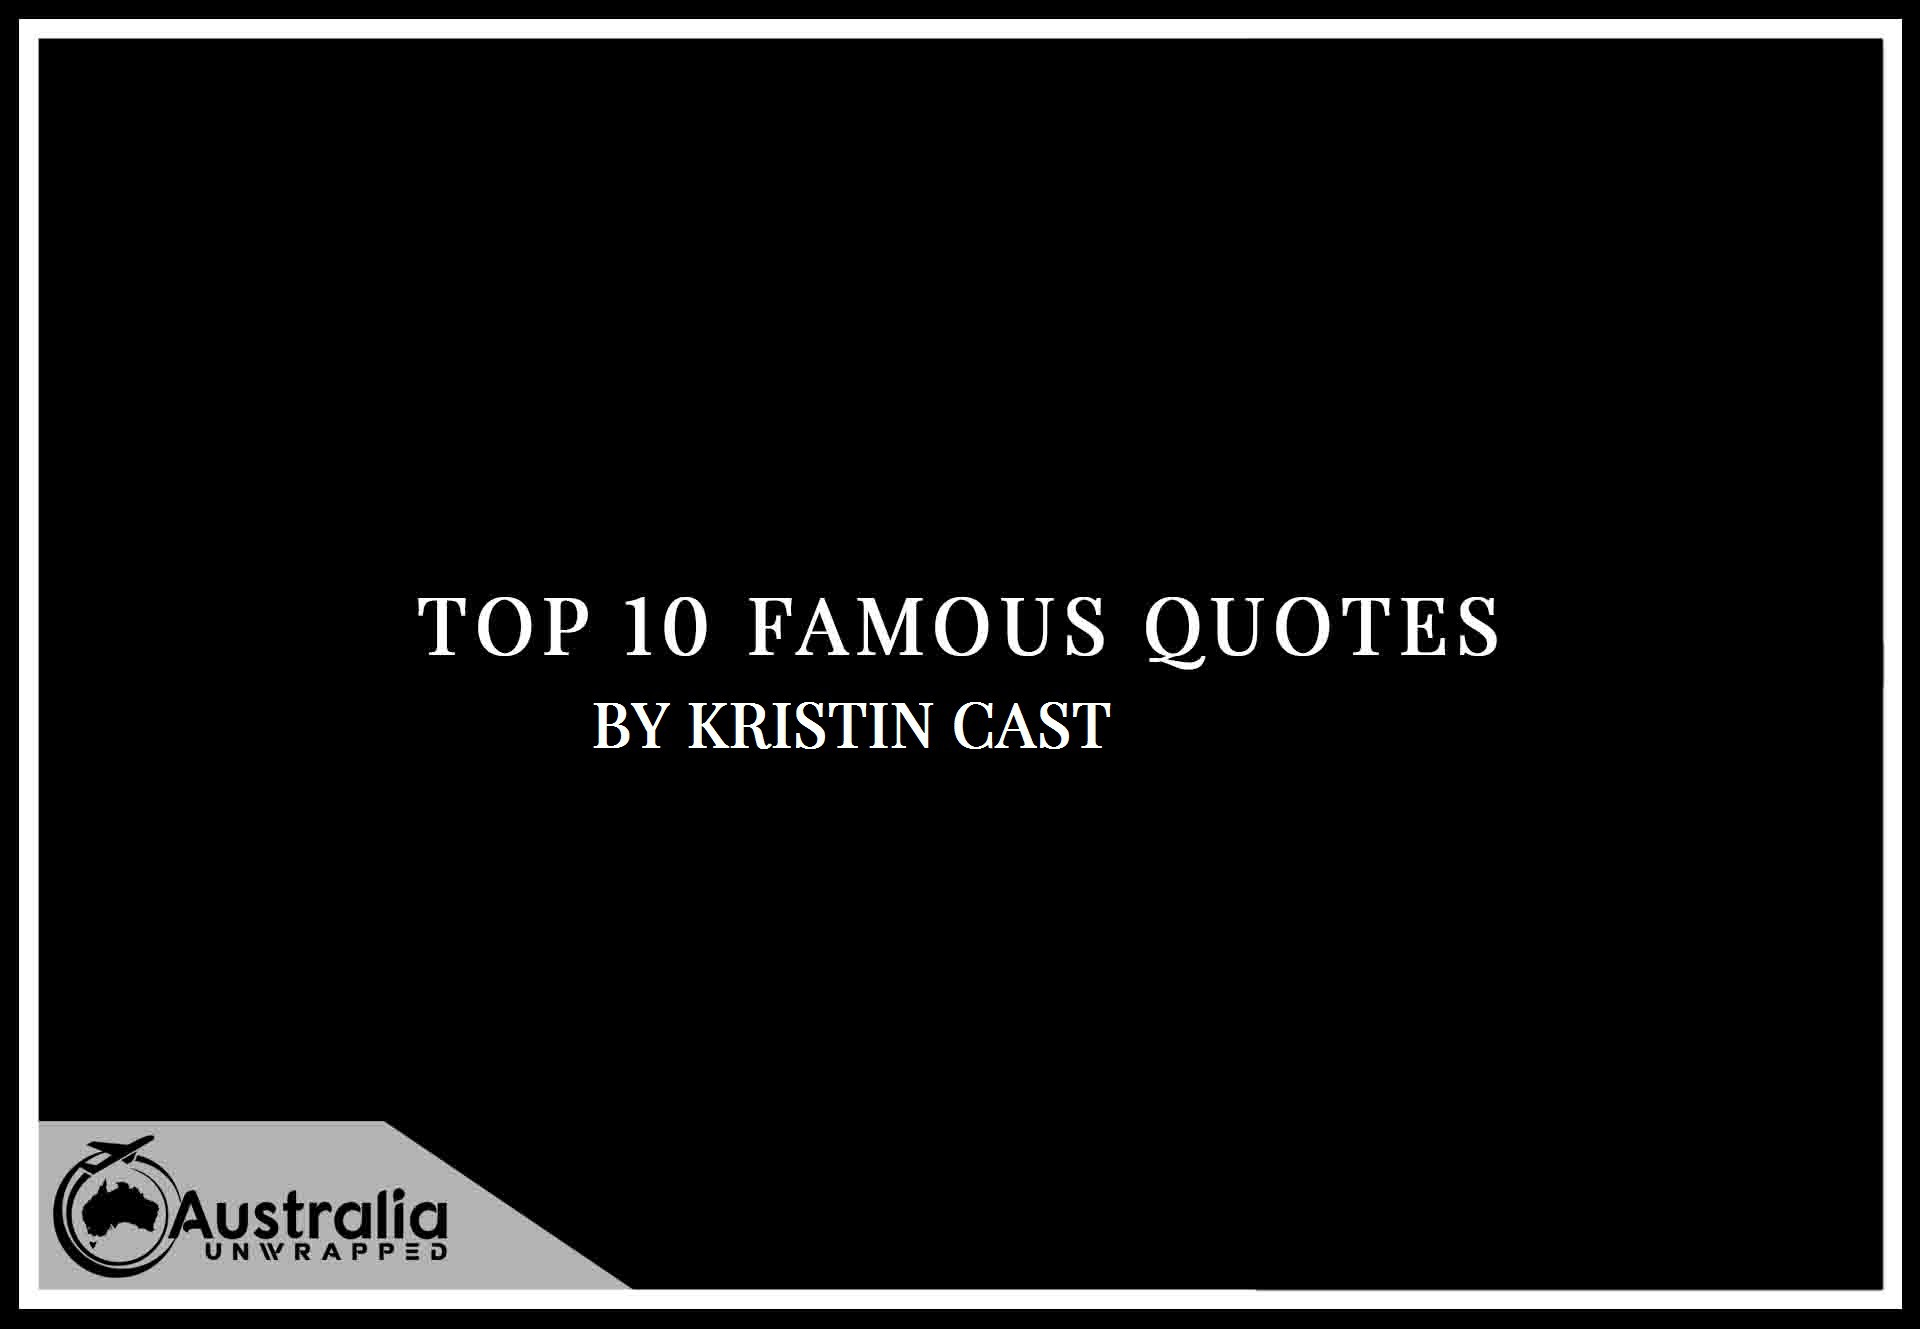 Kristin Cast's Top 10 Popular and Famous Quotes